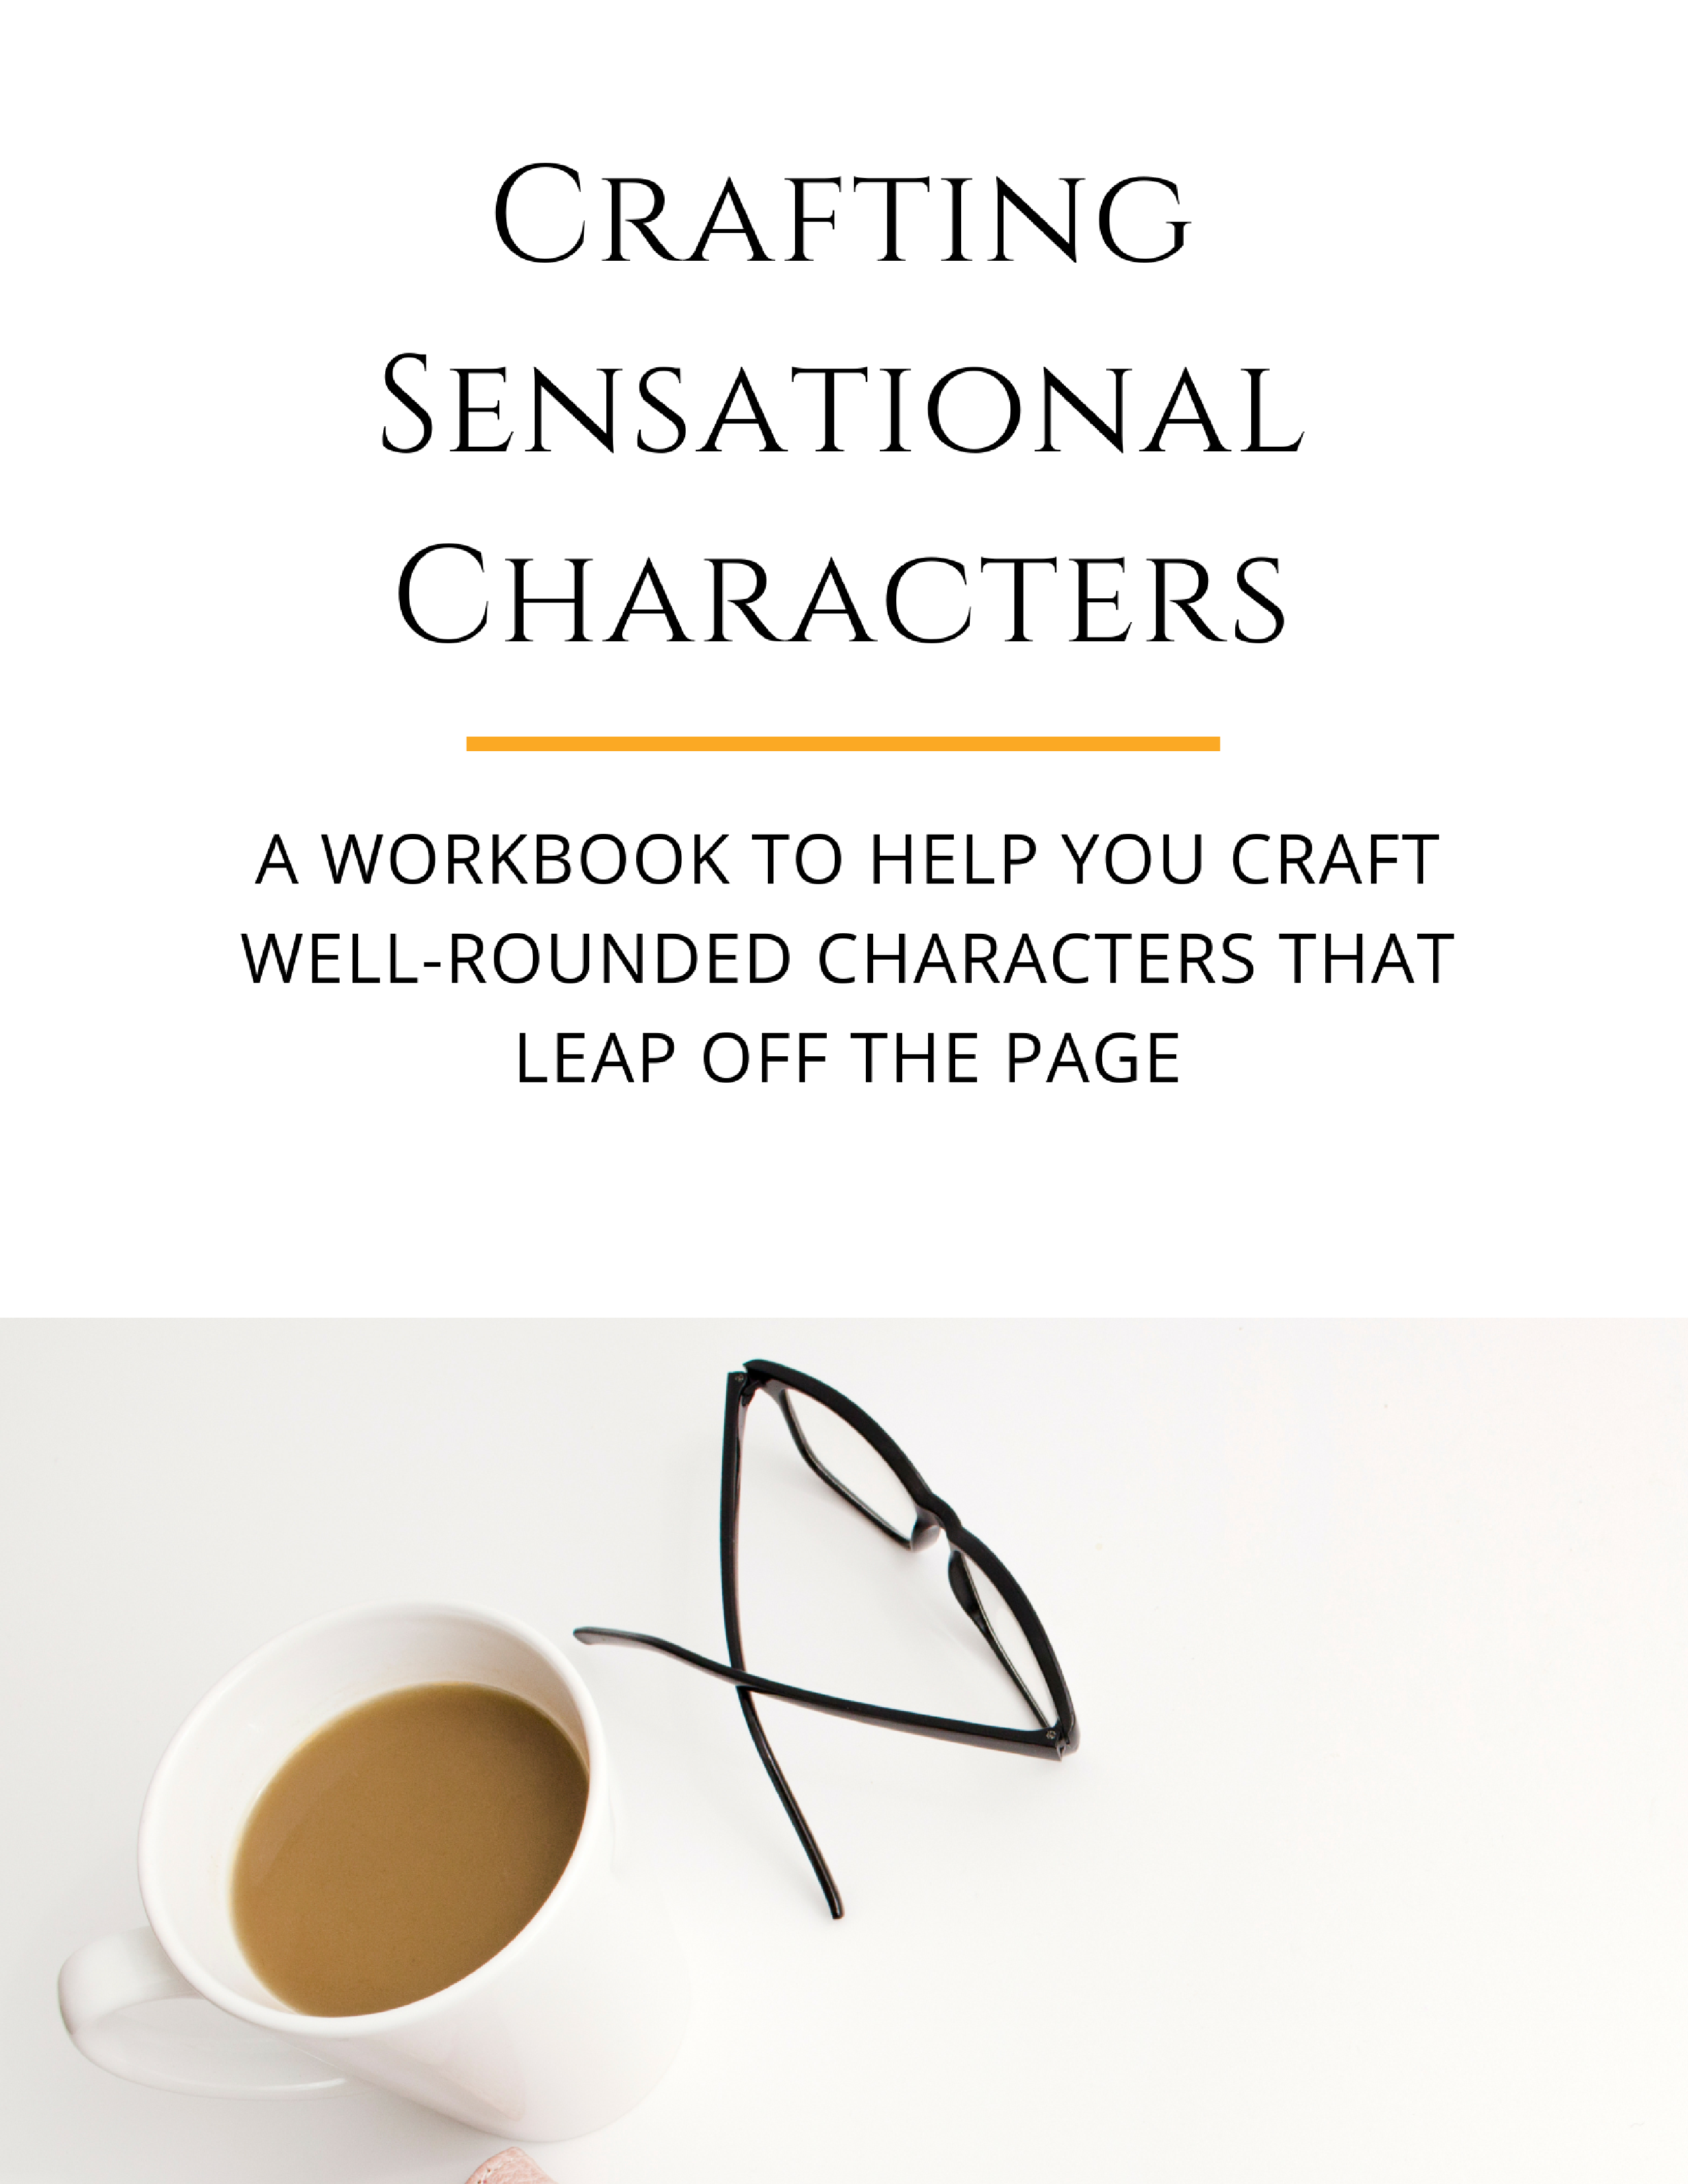 The Crafting Sensational Characters Workbook Helps Writers